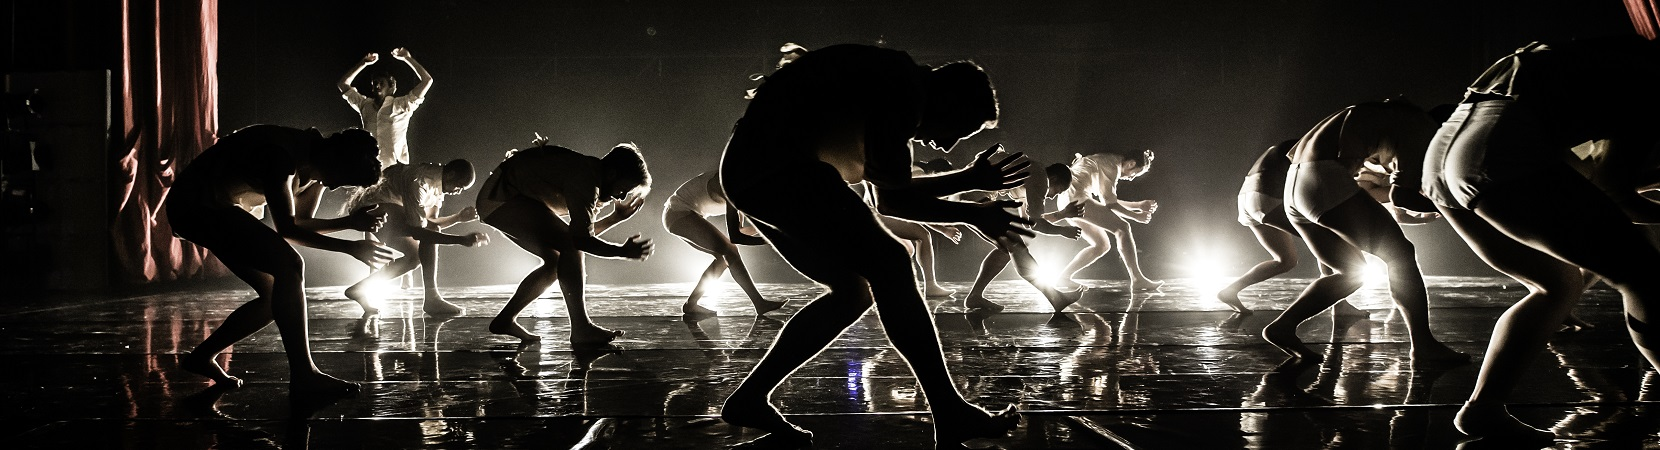 Horses-in-the-Sky-by-Rami-Beer-Kibbutz-Contemporray-Dance-Company-The-Best-Dance-Company-Homepage-Slider-004